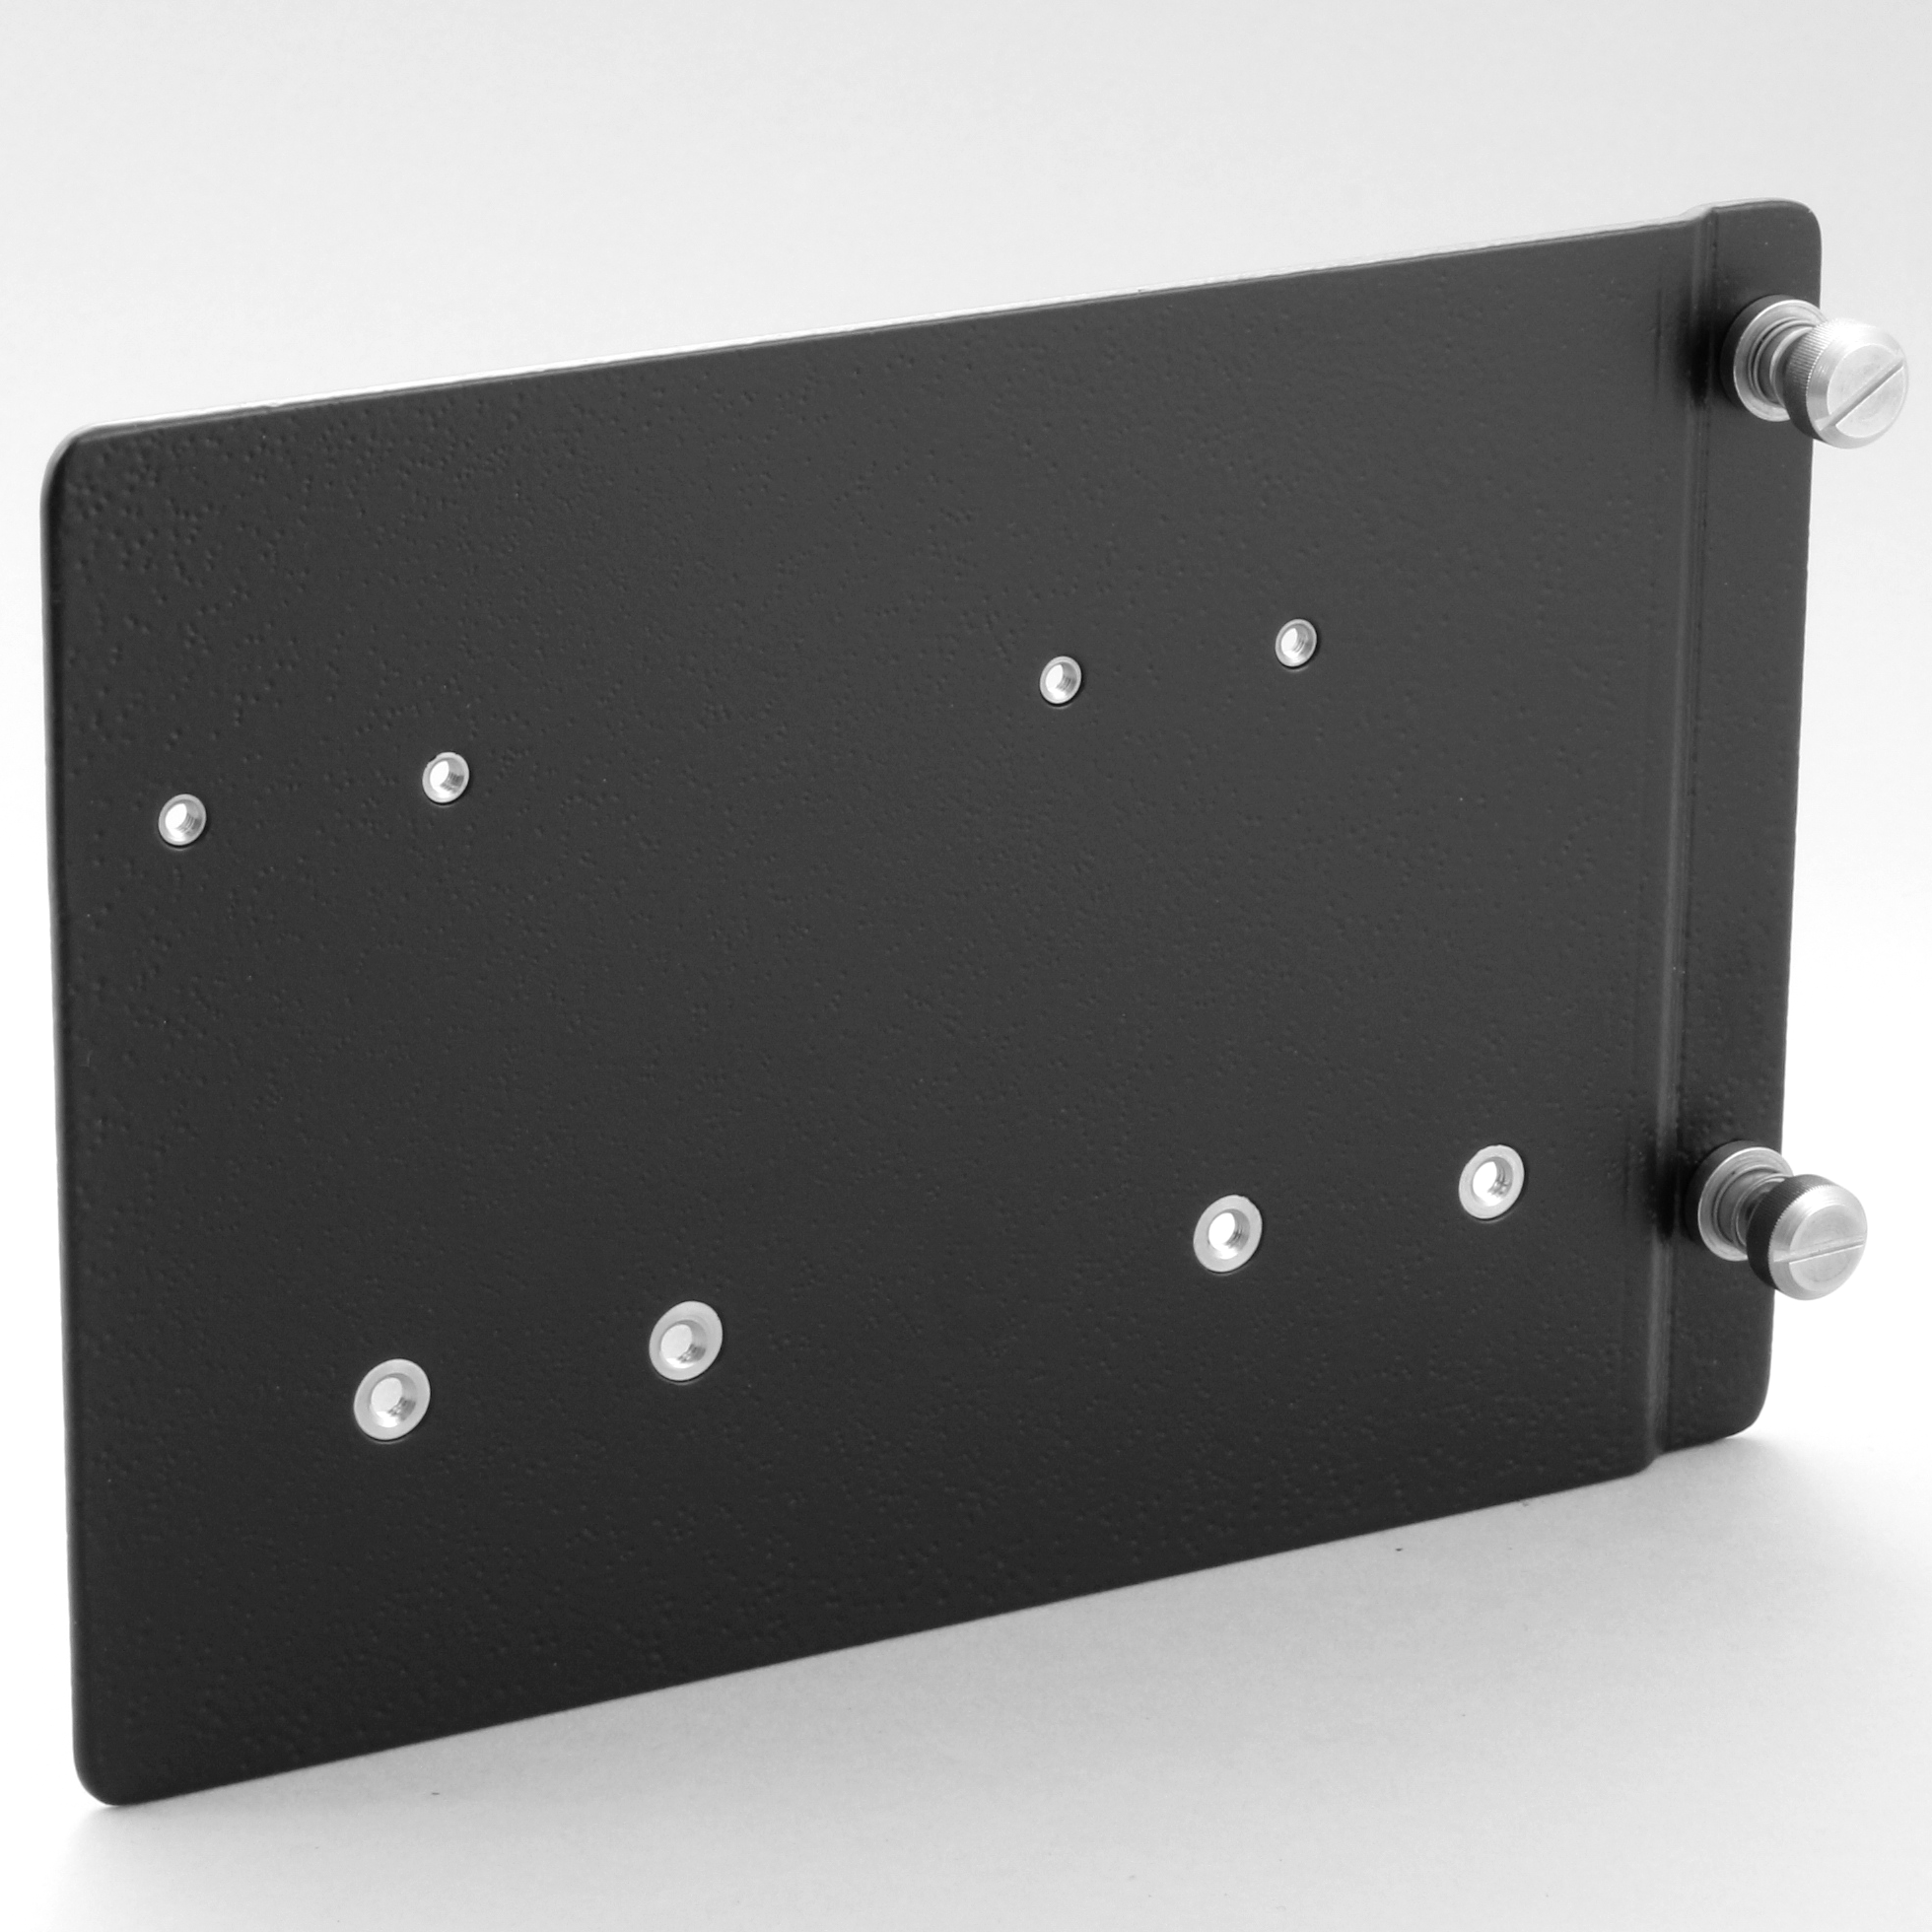 BEC-ABSPU-DBL Double Anton Bauer Style Side Plate